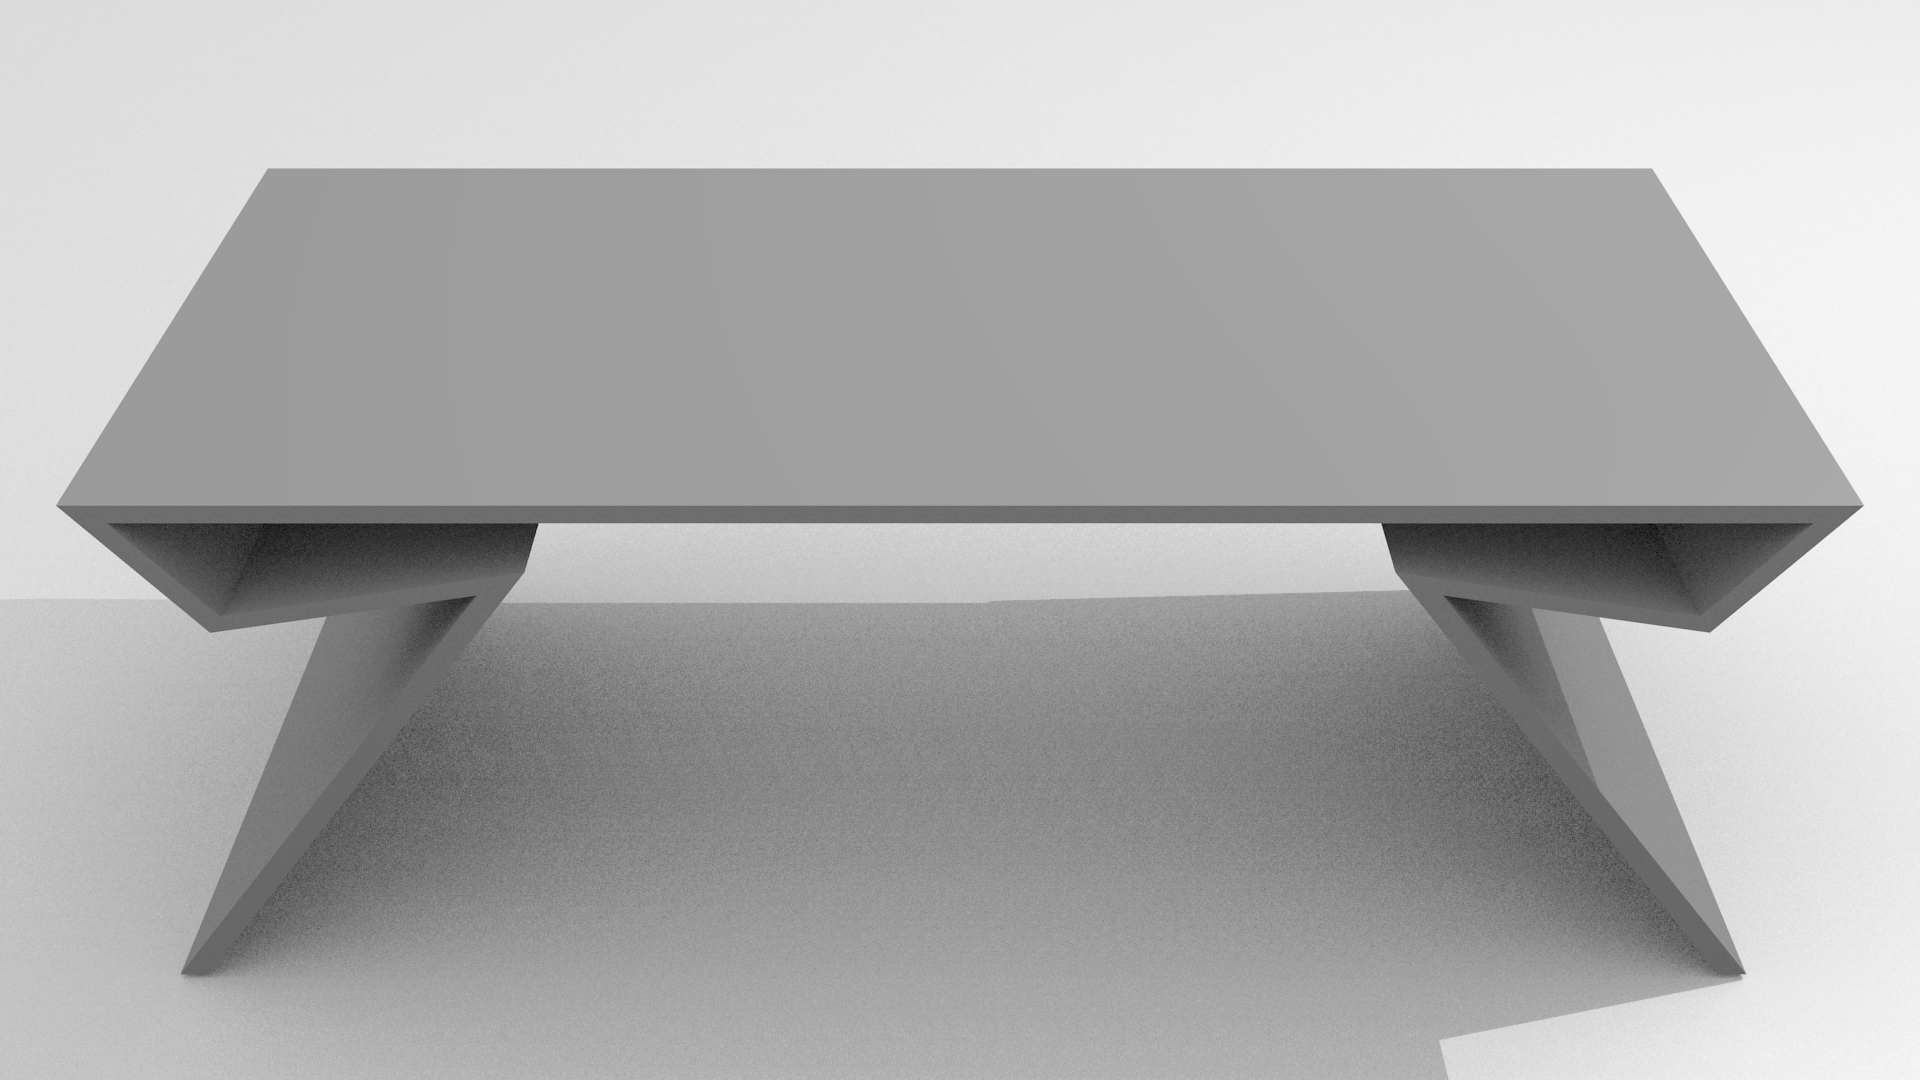 Modern table free 3d model obj blend dae for Innovative table